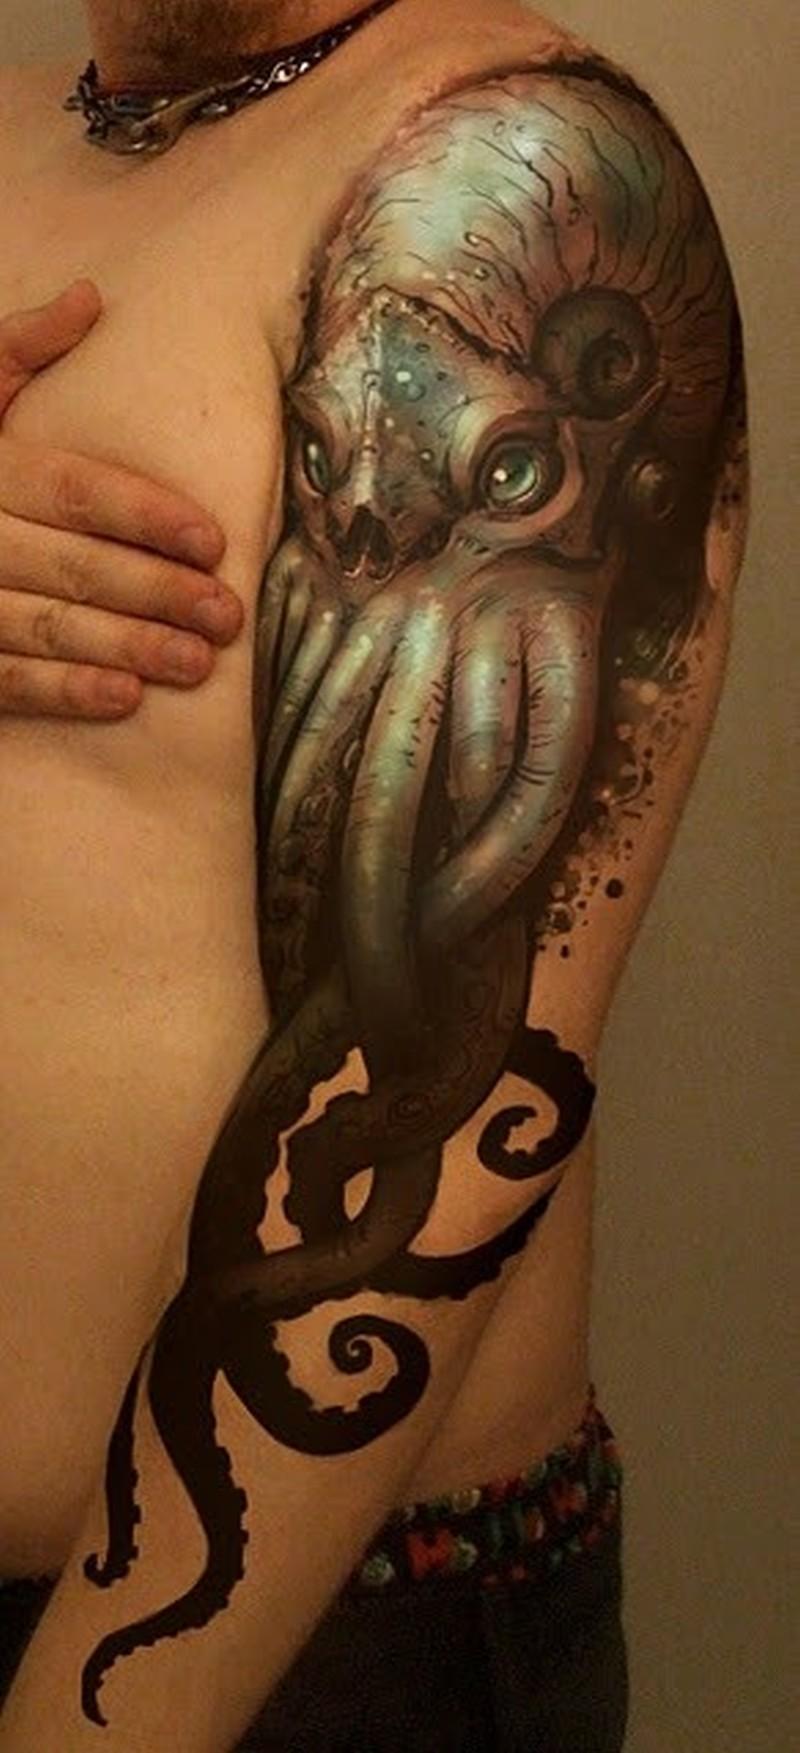 Cool realistic looking octopus tattoo on arm